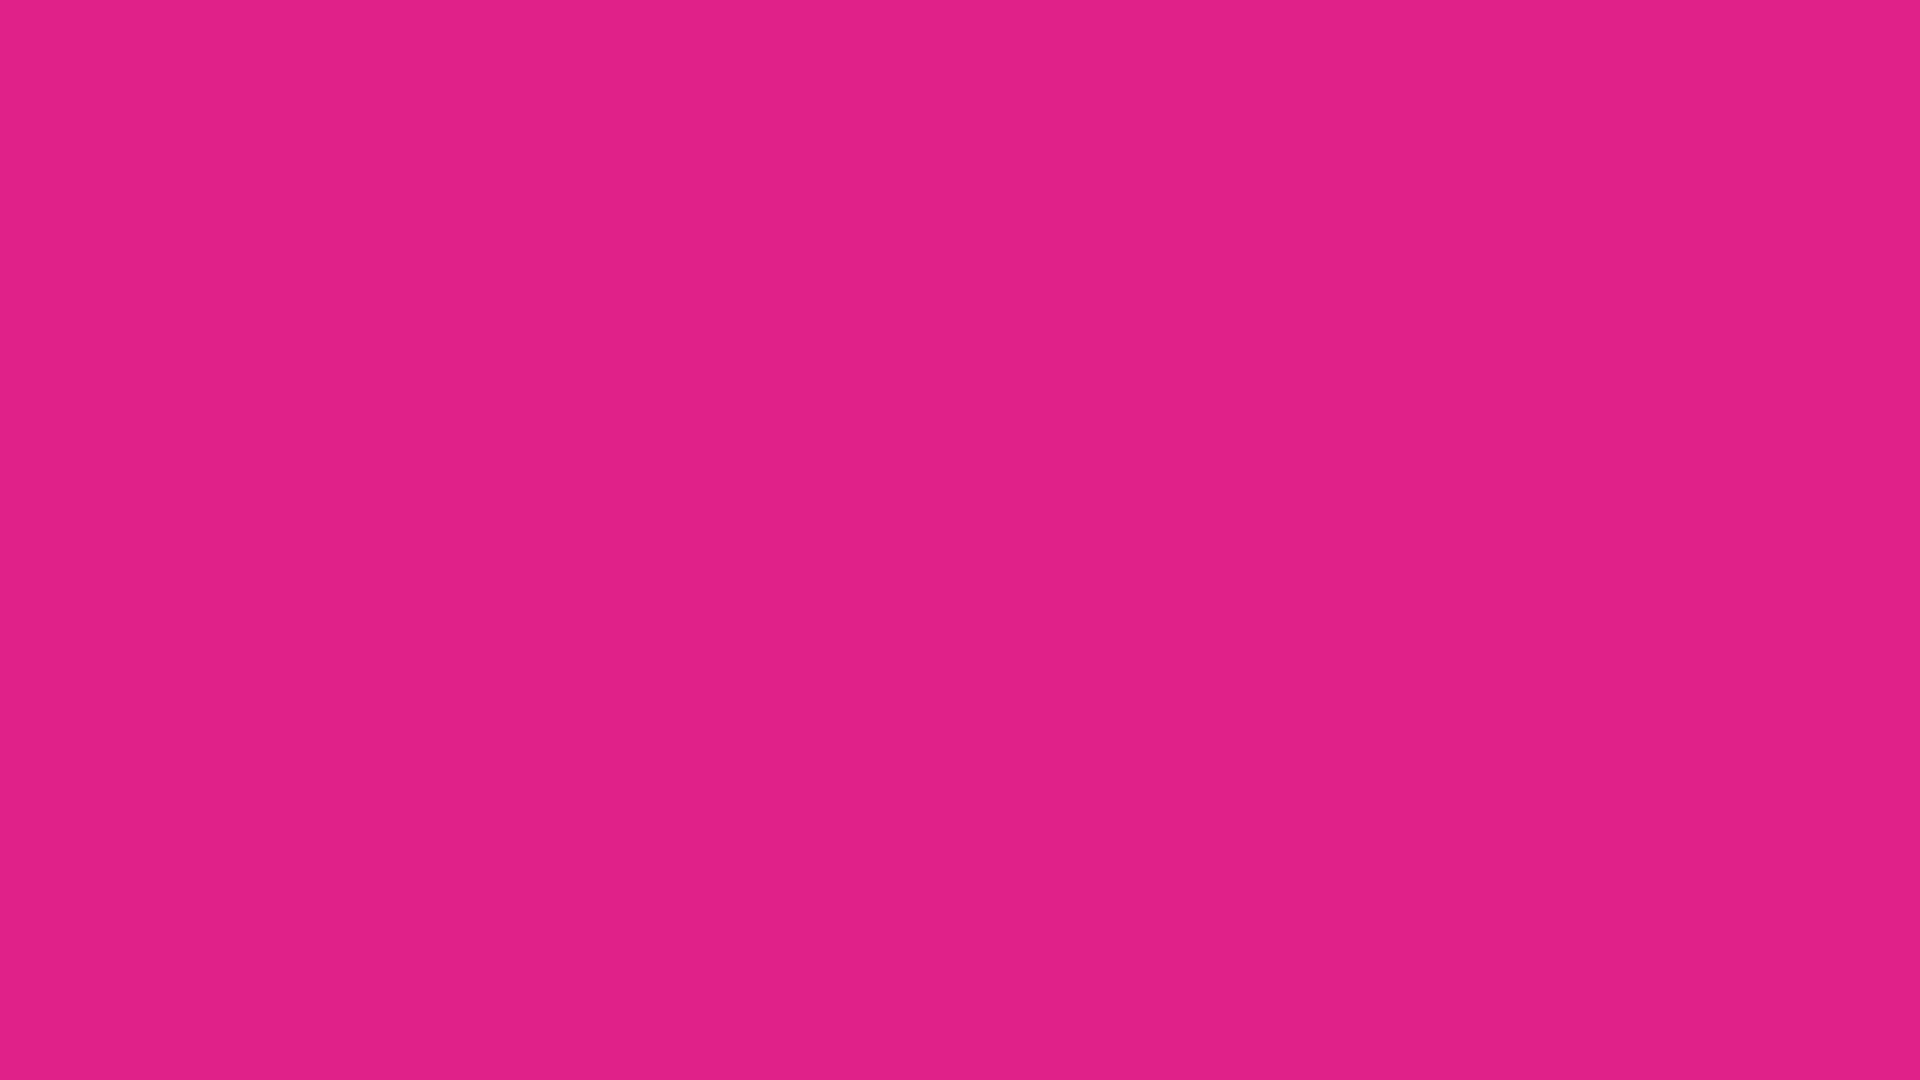 1920x1080 Barbie Pink Solid Color Background